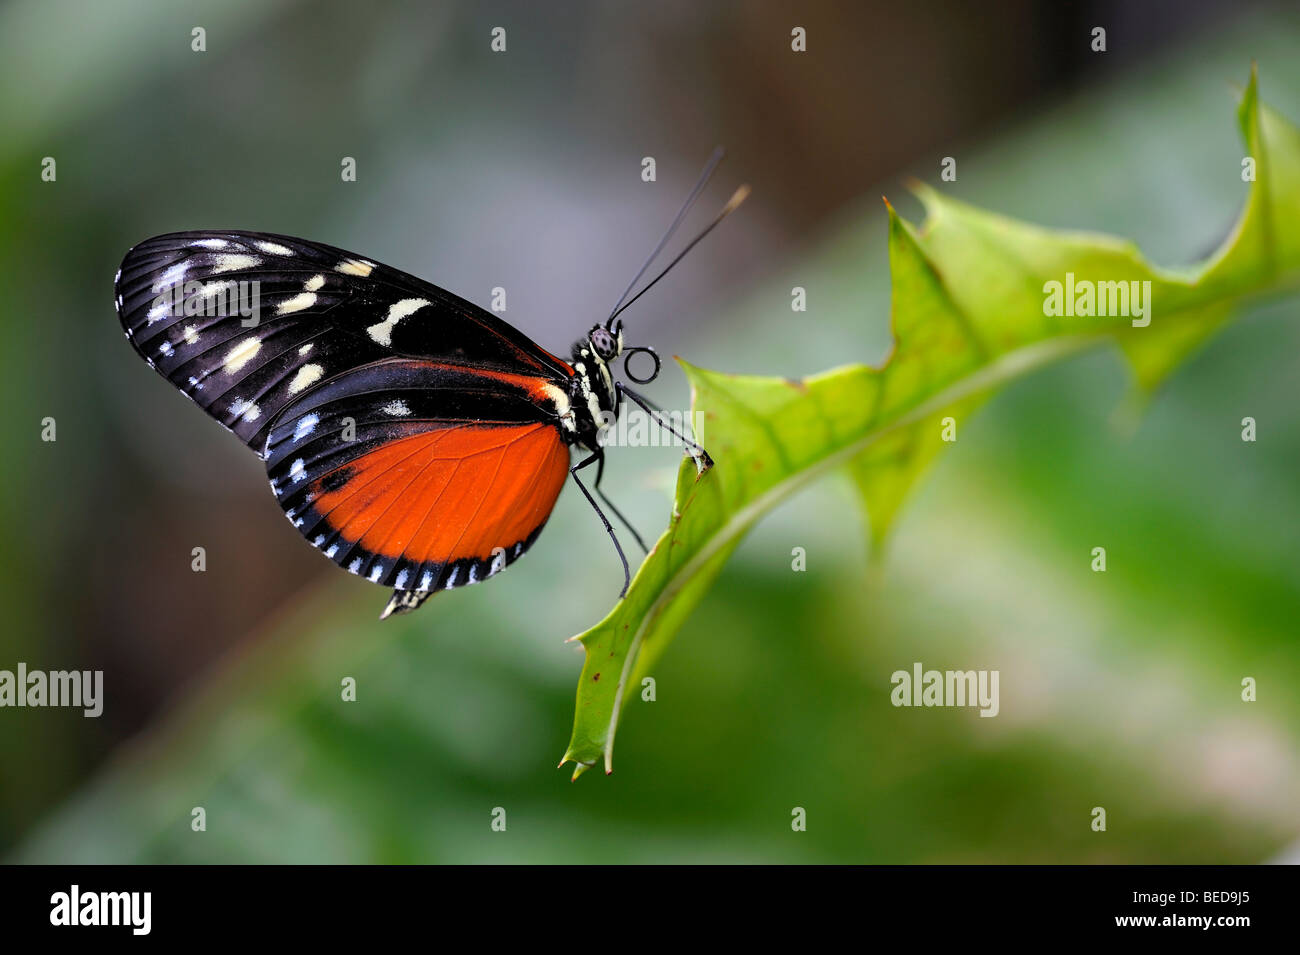 Tiger Heliconian or Ismenius Tiger (Heliconius ismenius) on a leaf - Stock Image